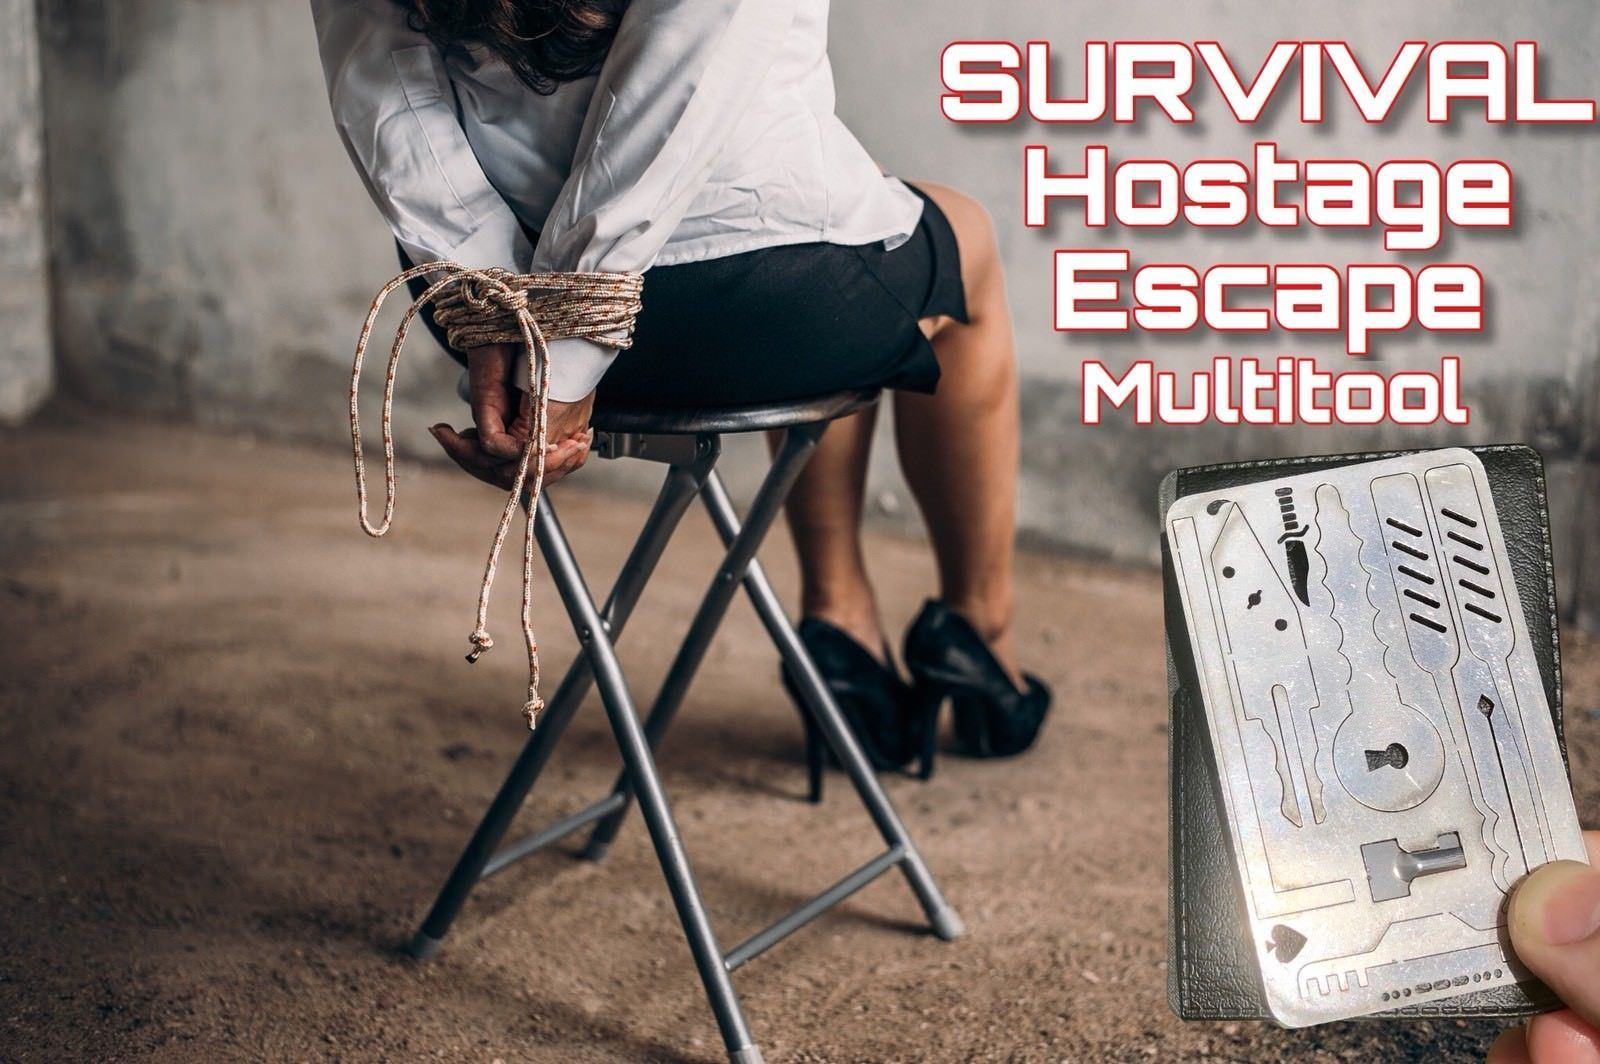 EDC Escape Hostage Survival Card Multi Tool Credit Card Size FREE DELIVERY - Outback Tactical